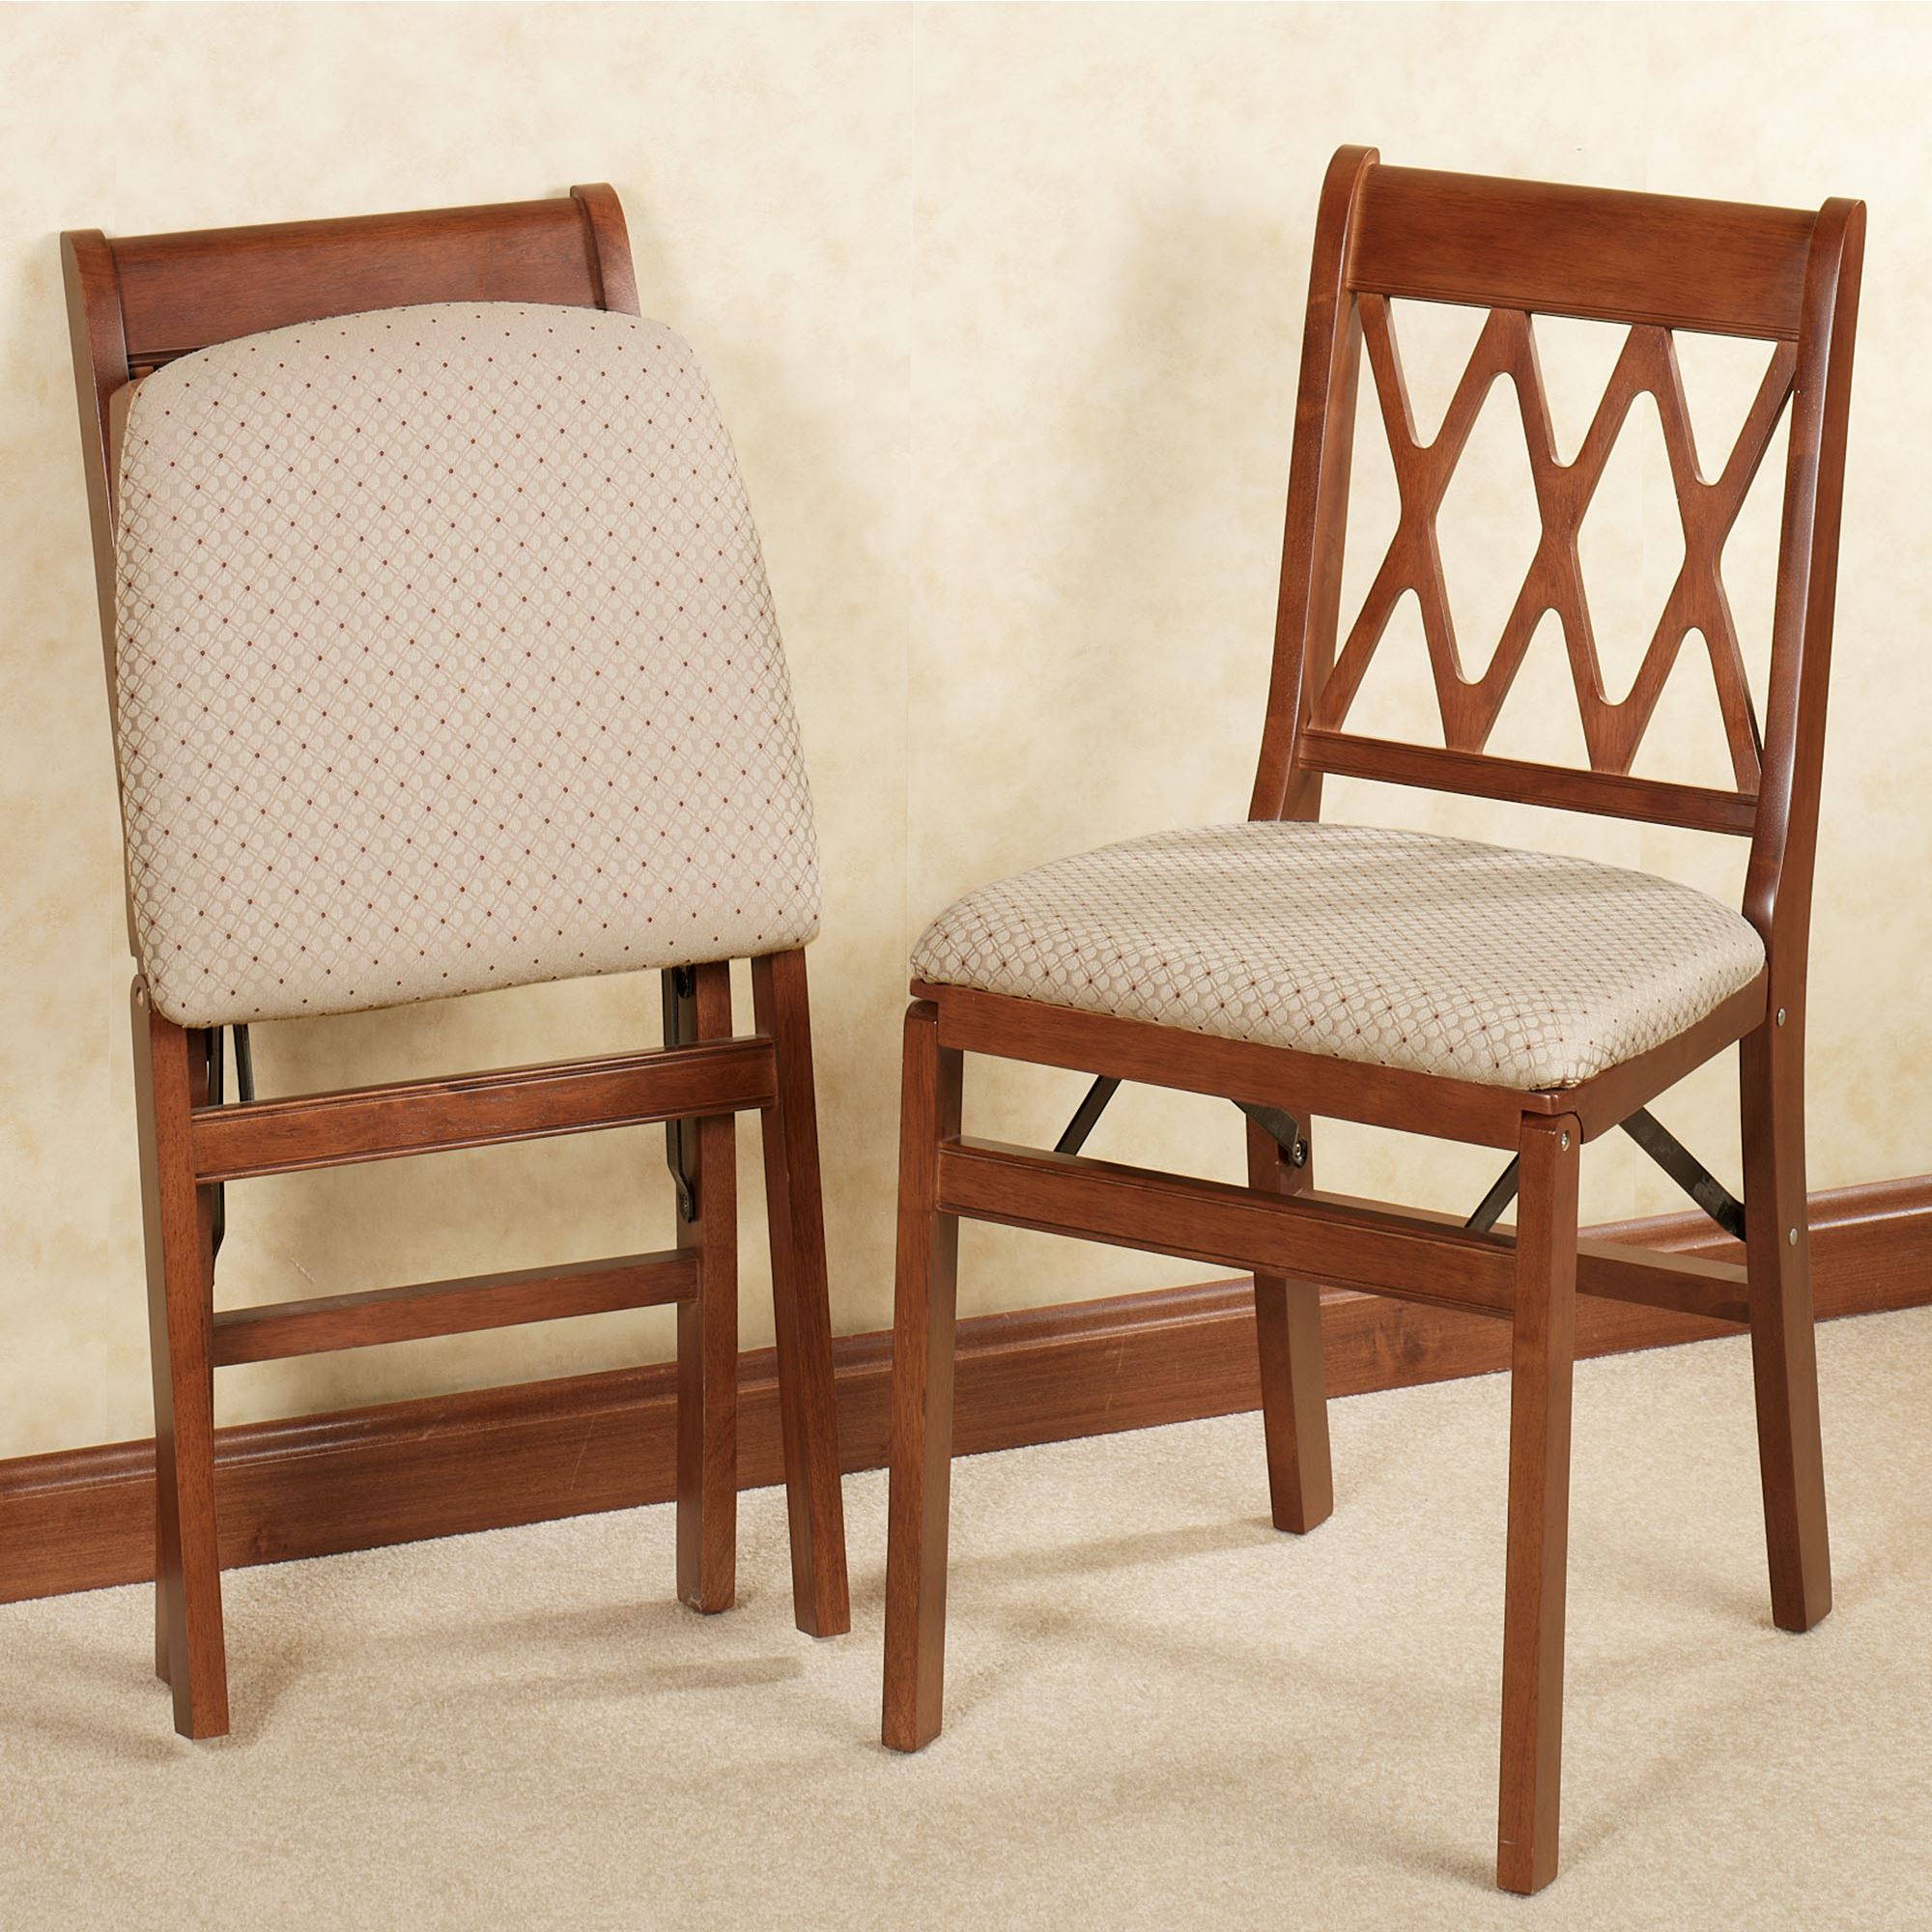 foldable chairs unusual for hallway lattice back folding chair pair